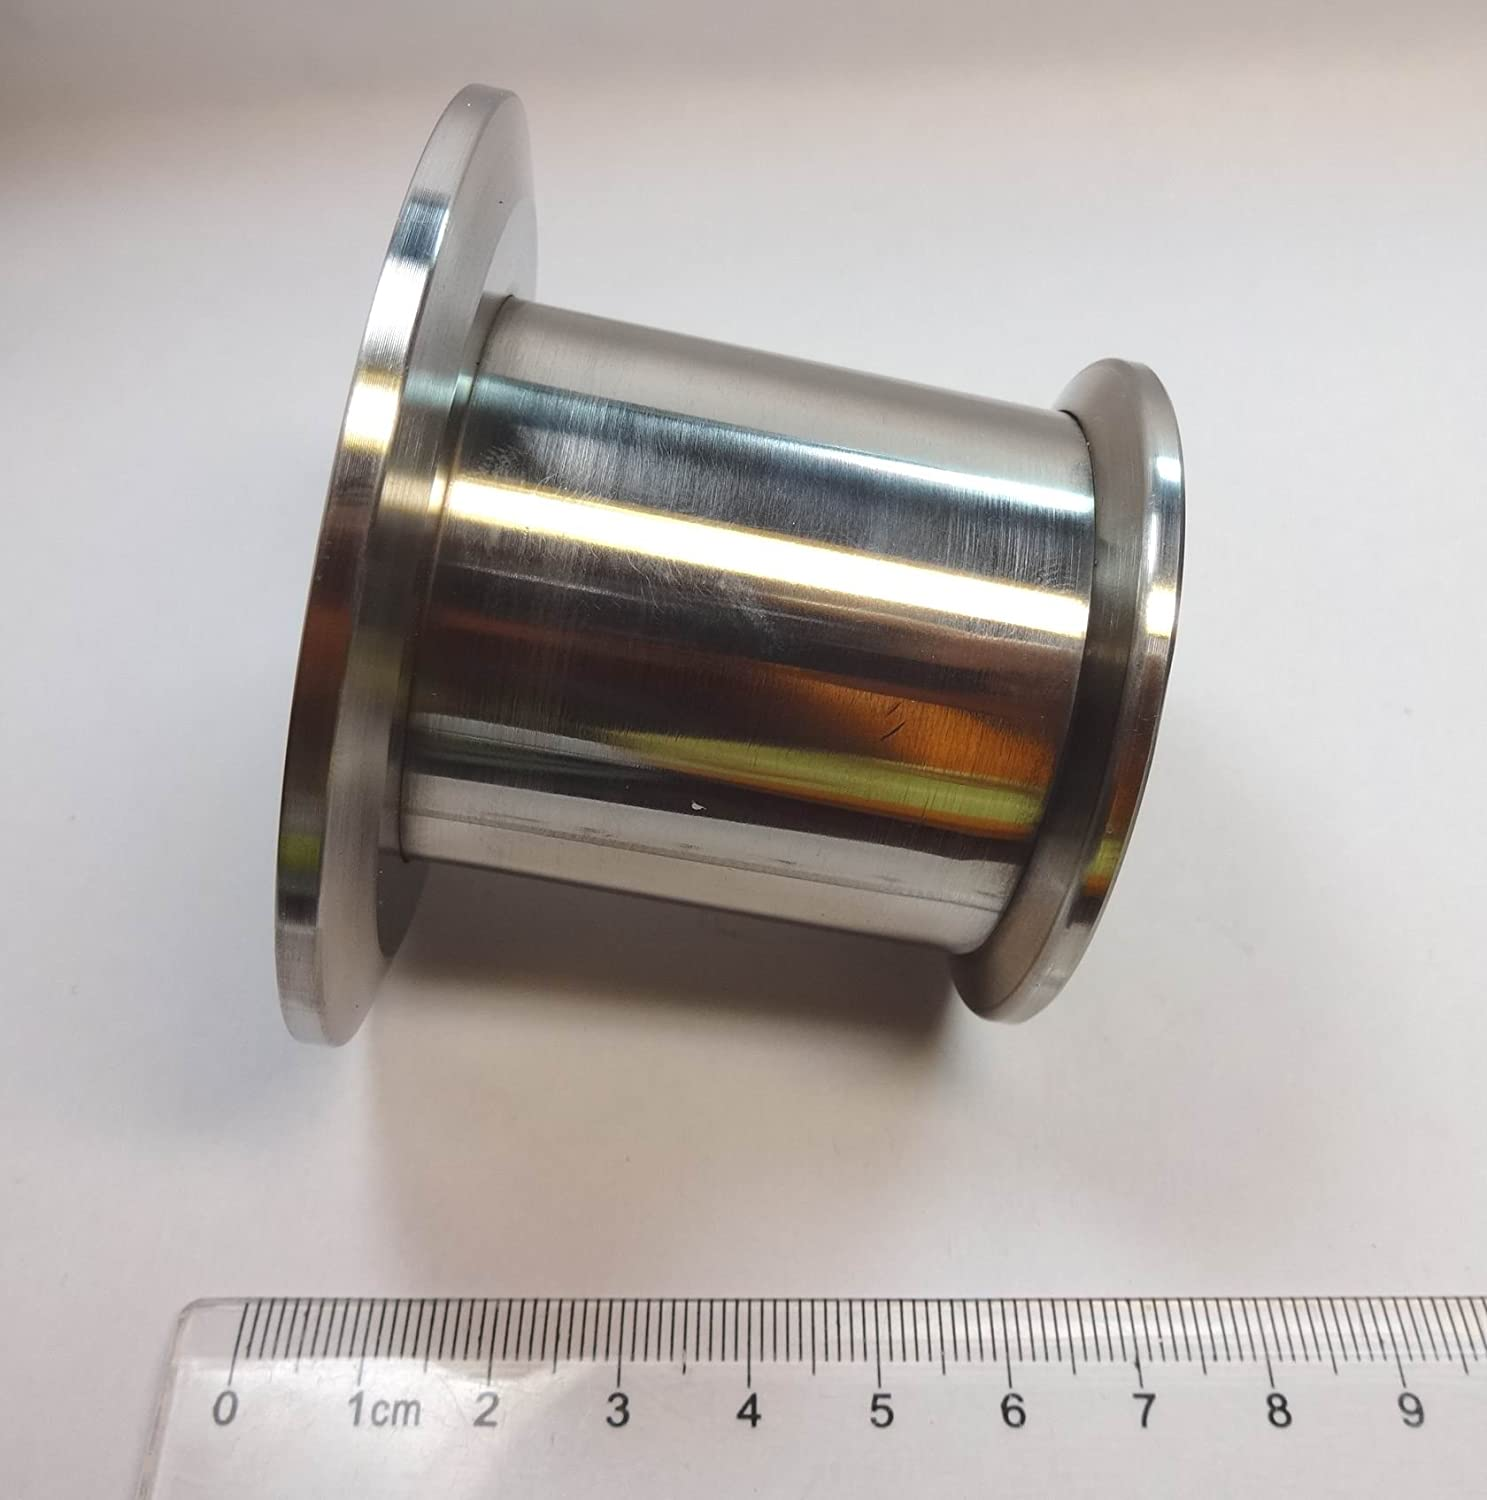 Vacuum Straight Reducer, NW/KF-50 to NW/KF-40, Vacuum Fitting, 304 Stainless Steel